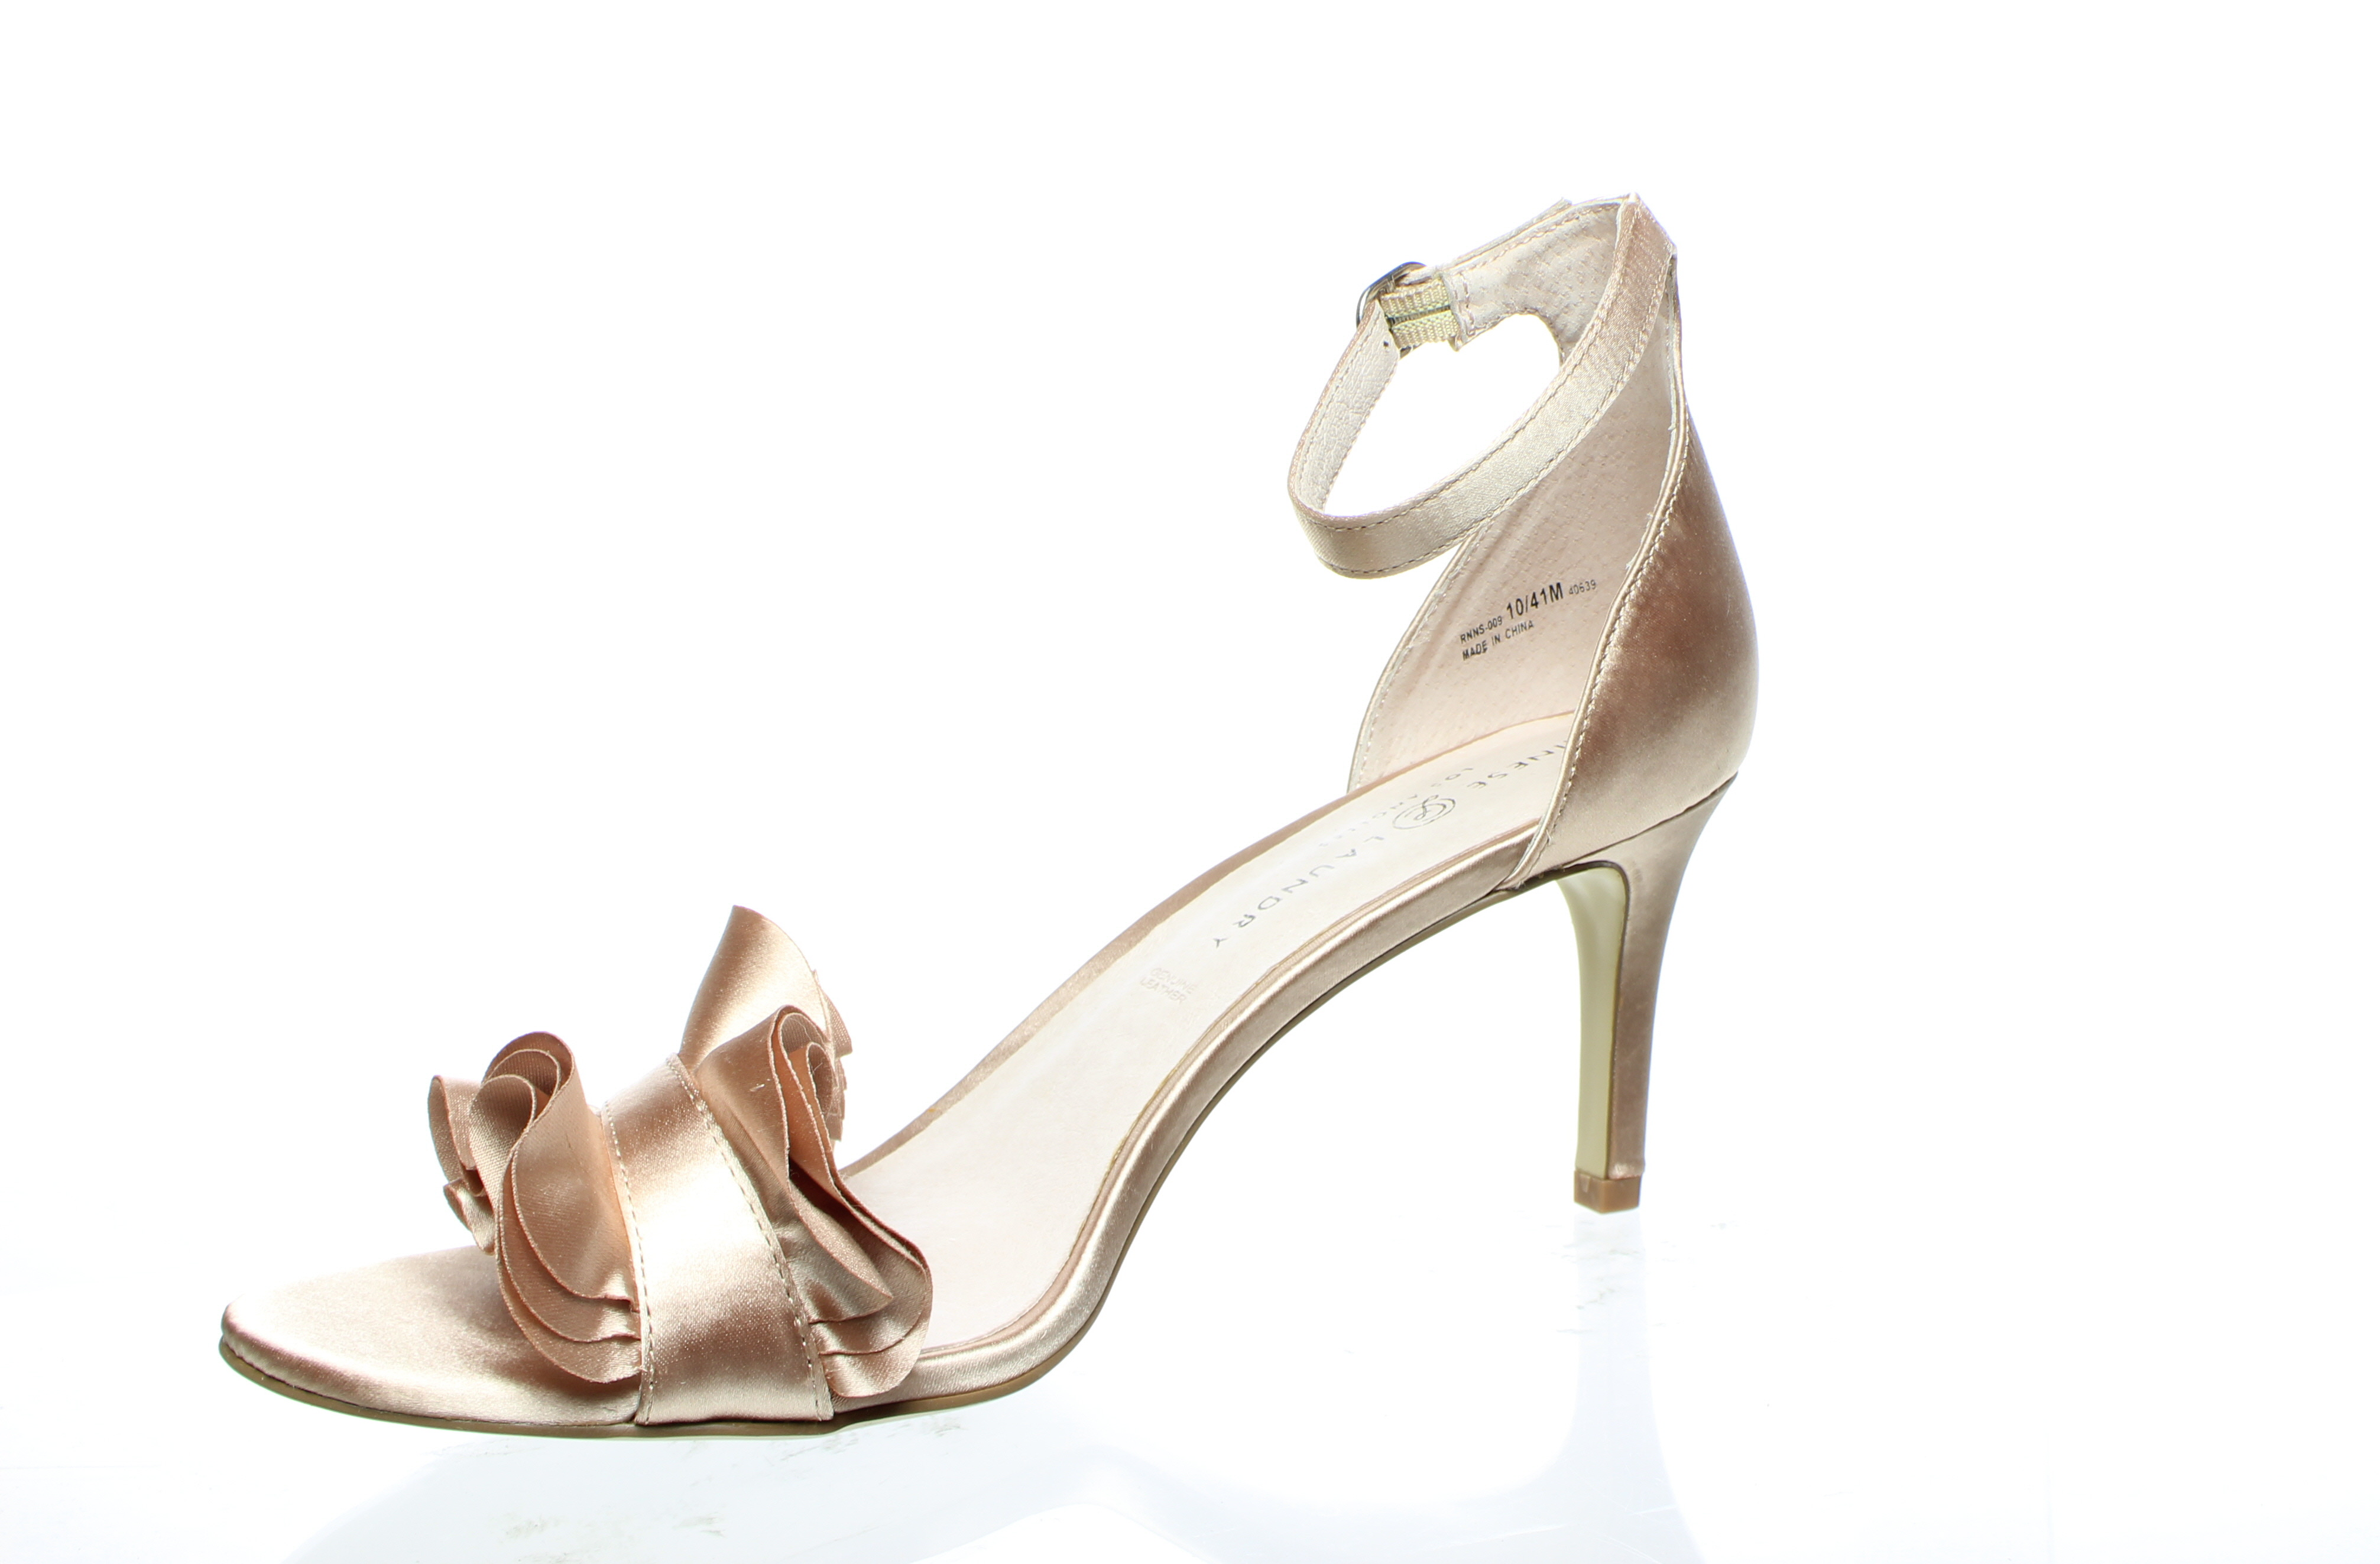 Chinese Laundry Womens Leather Remmy Satin Nude Sandals